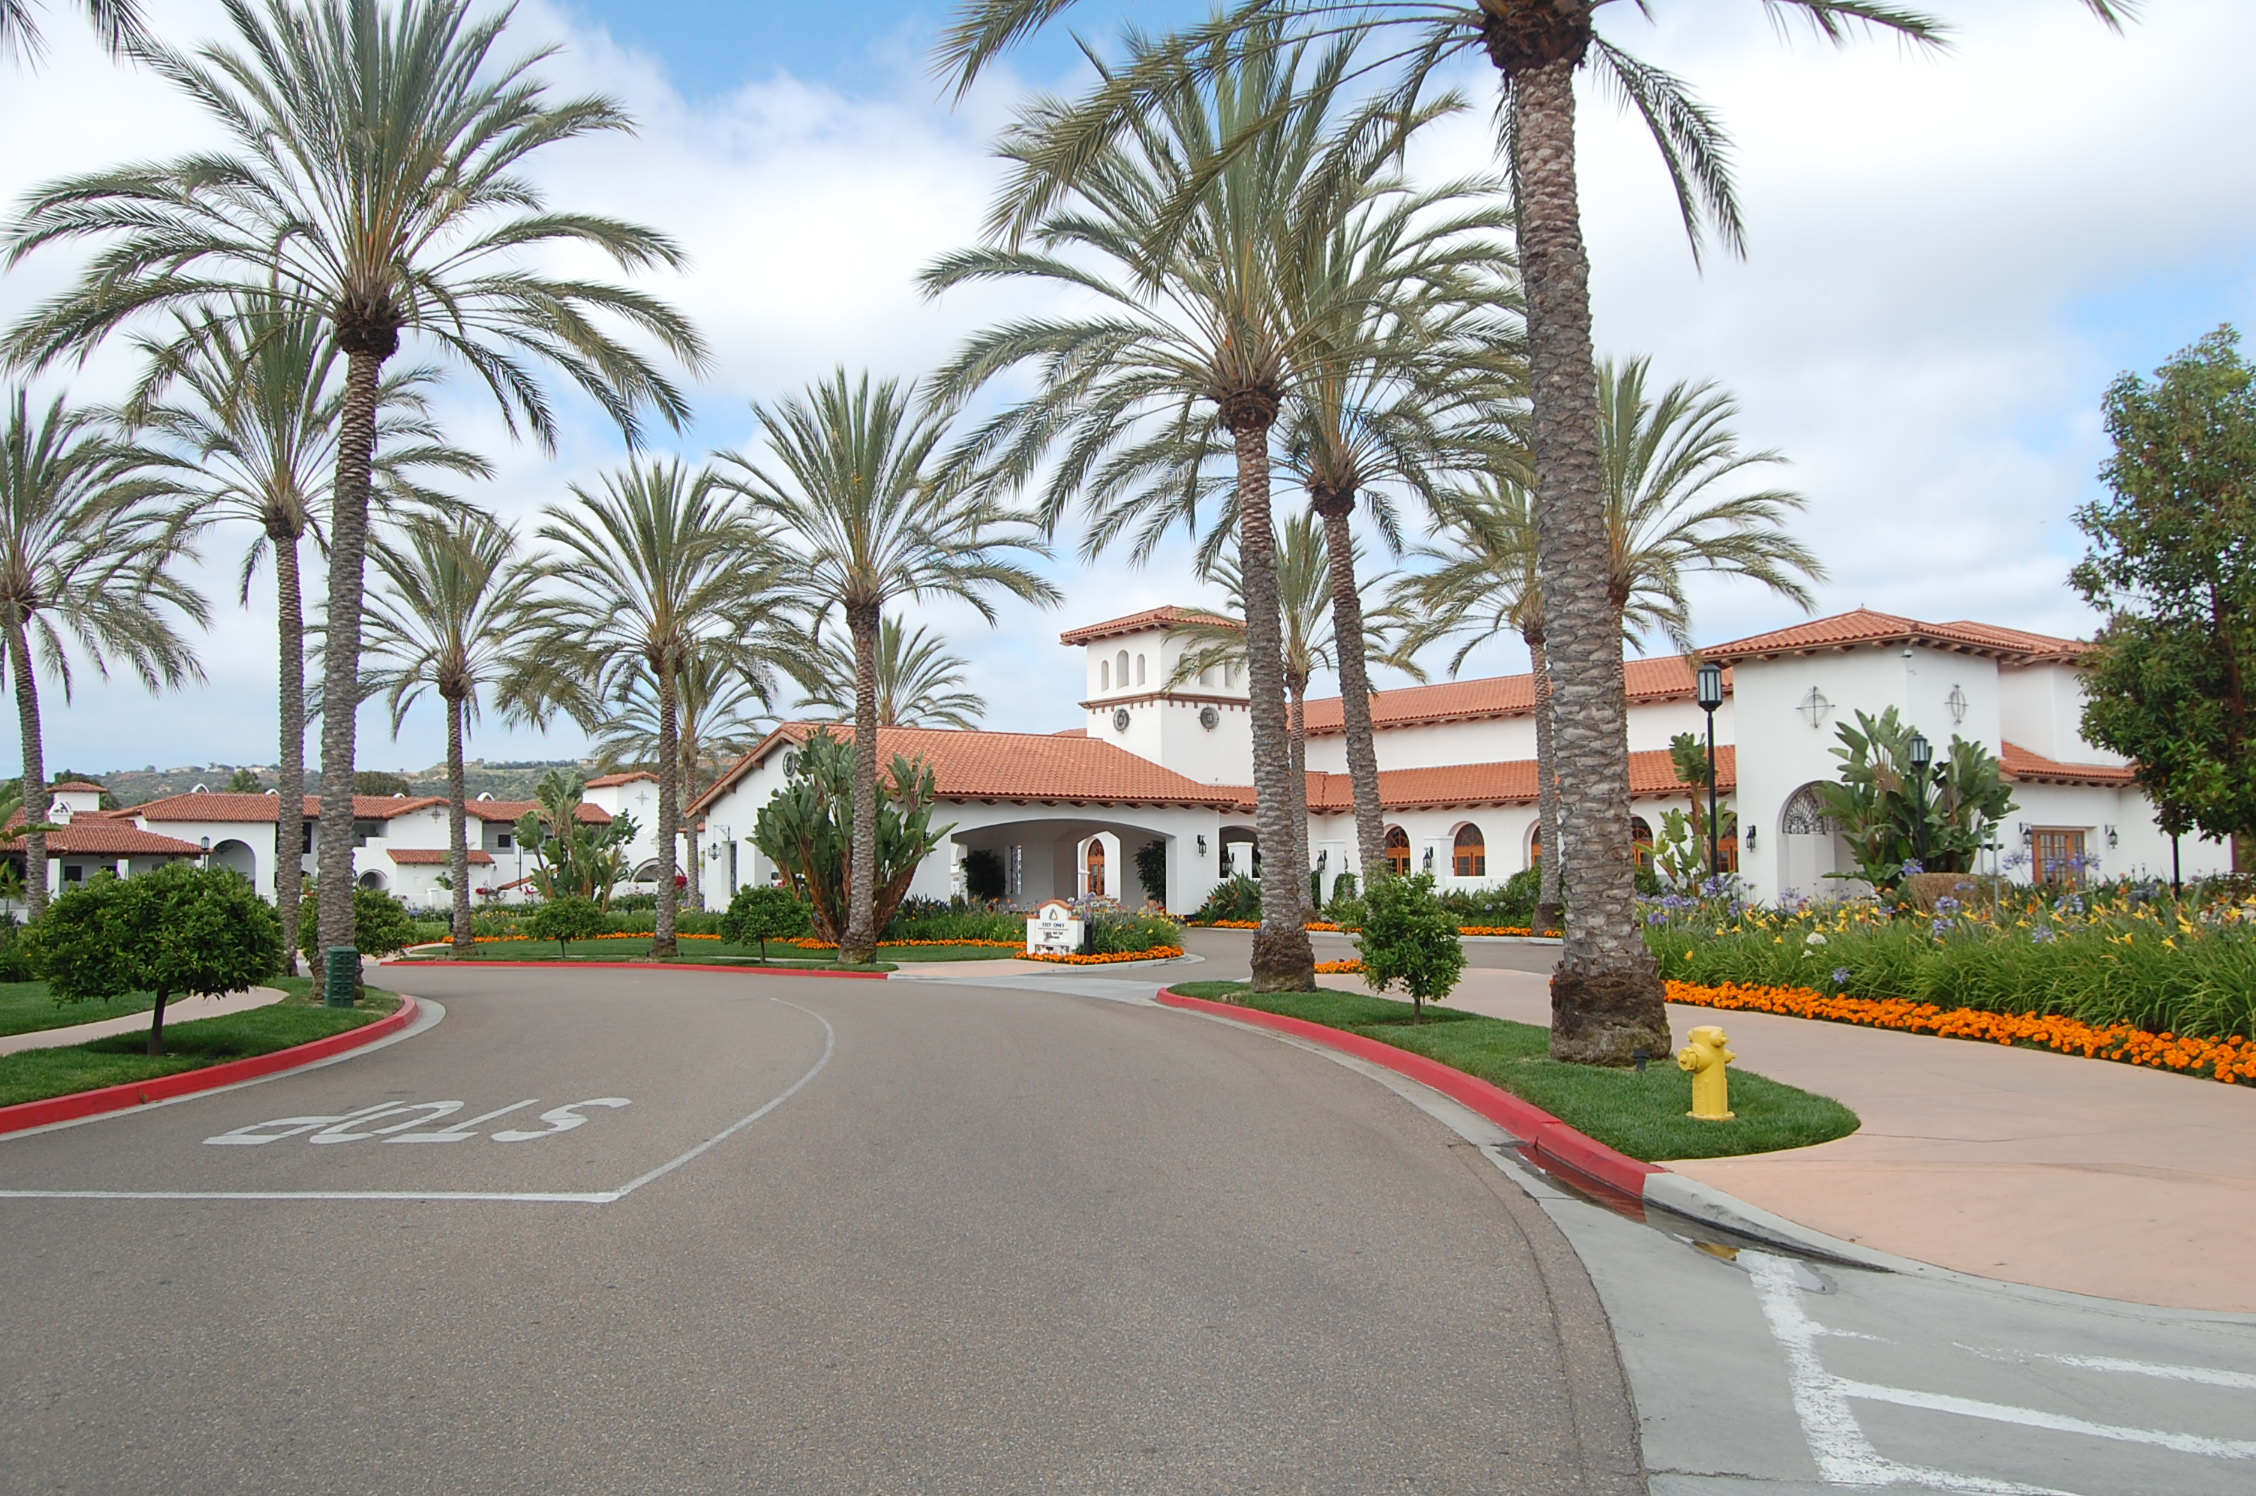 San Diego Carlsbad, Where To Stay & Other Must Do's